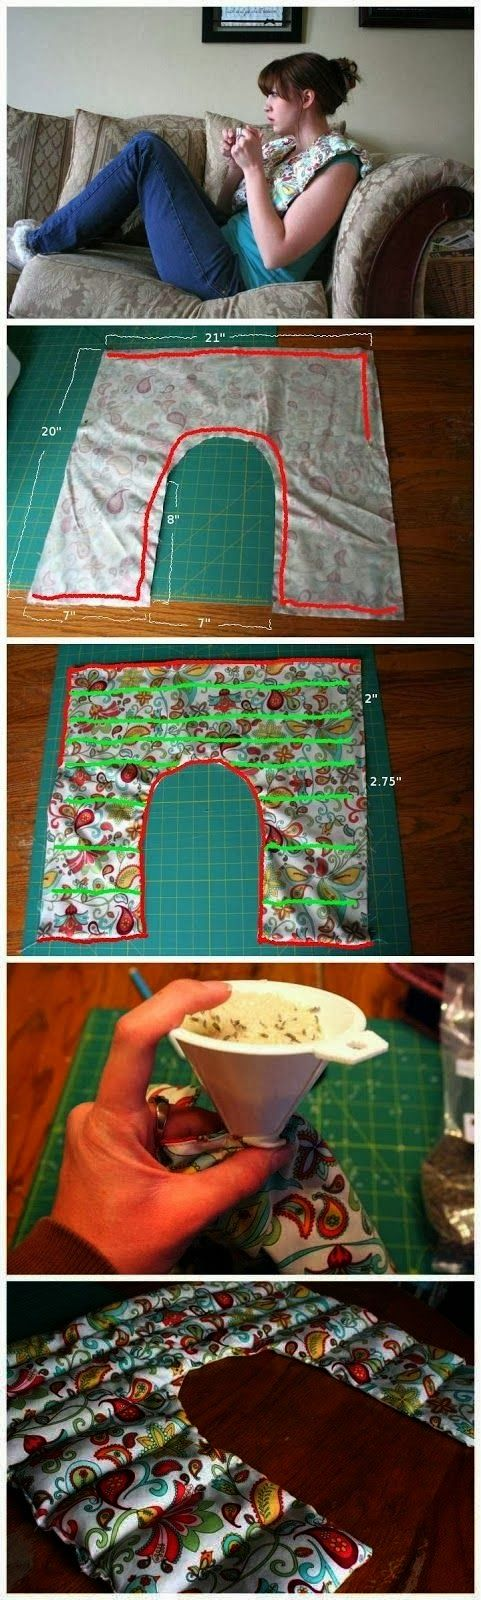 TwistMaterialz: Rice Shoulder Heating Pad, with Lavender Project